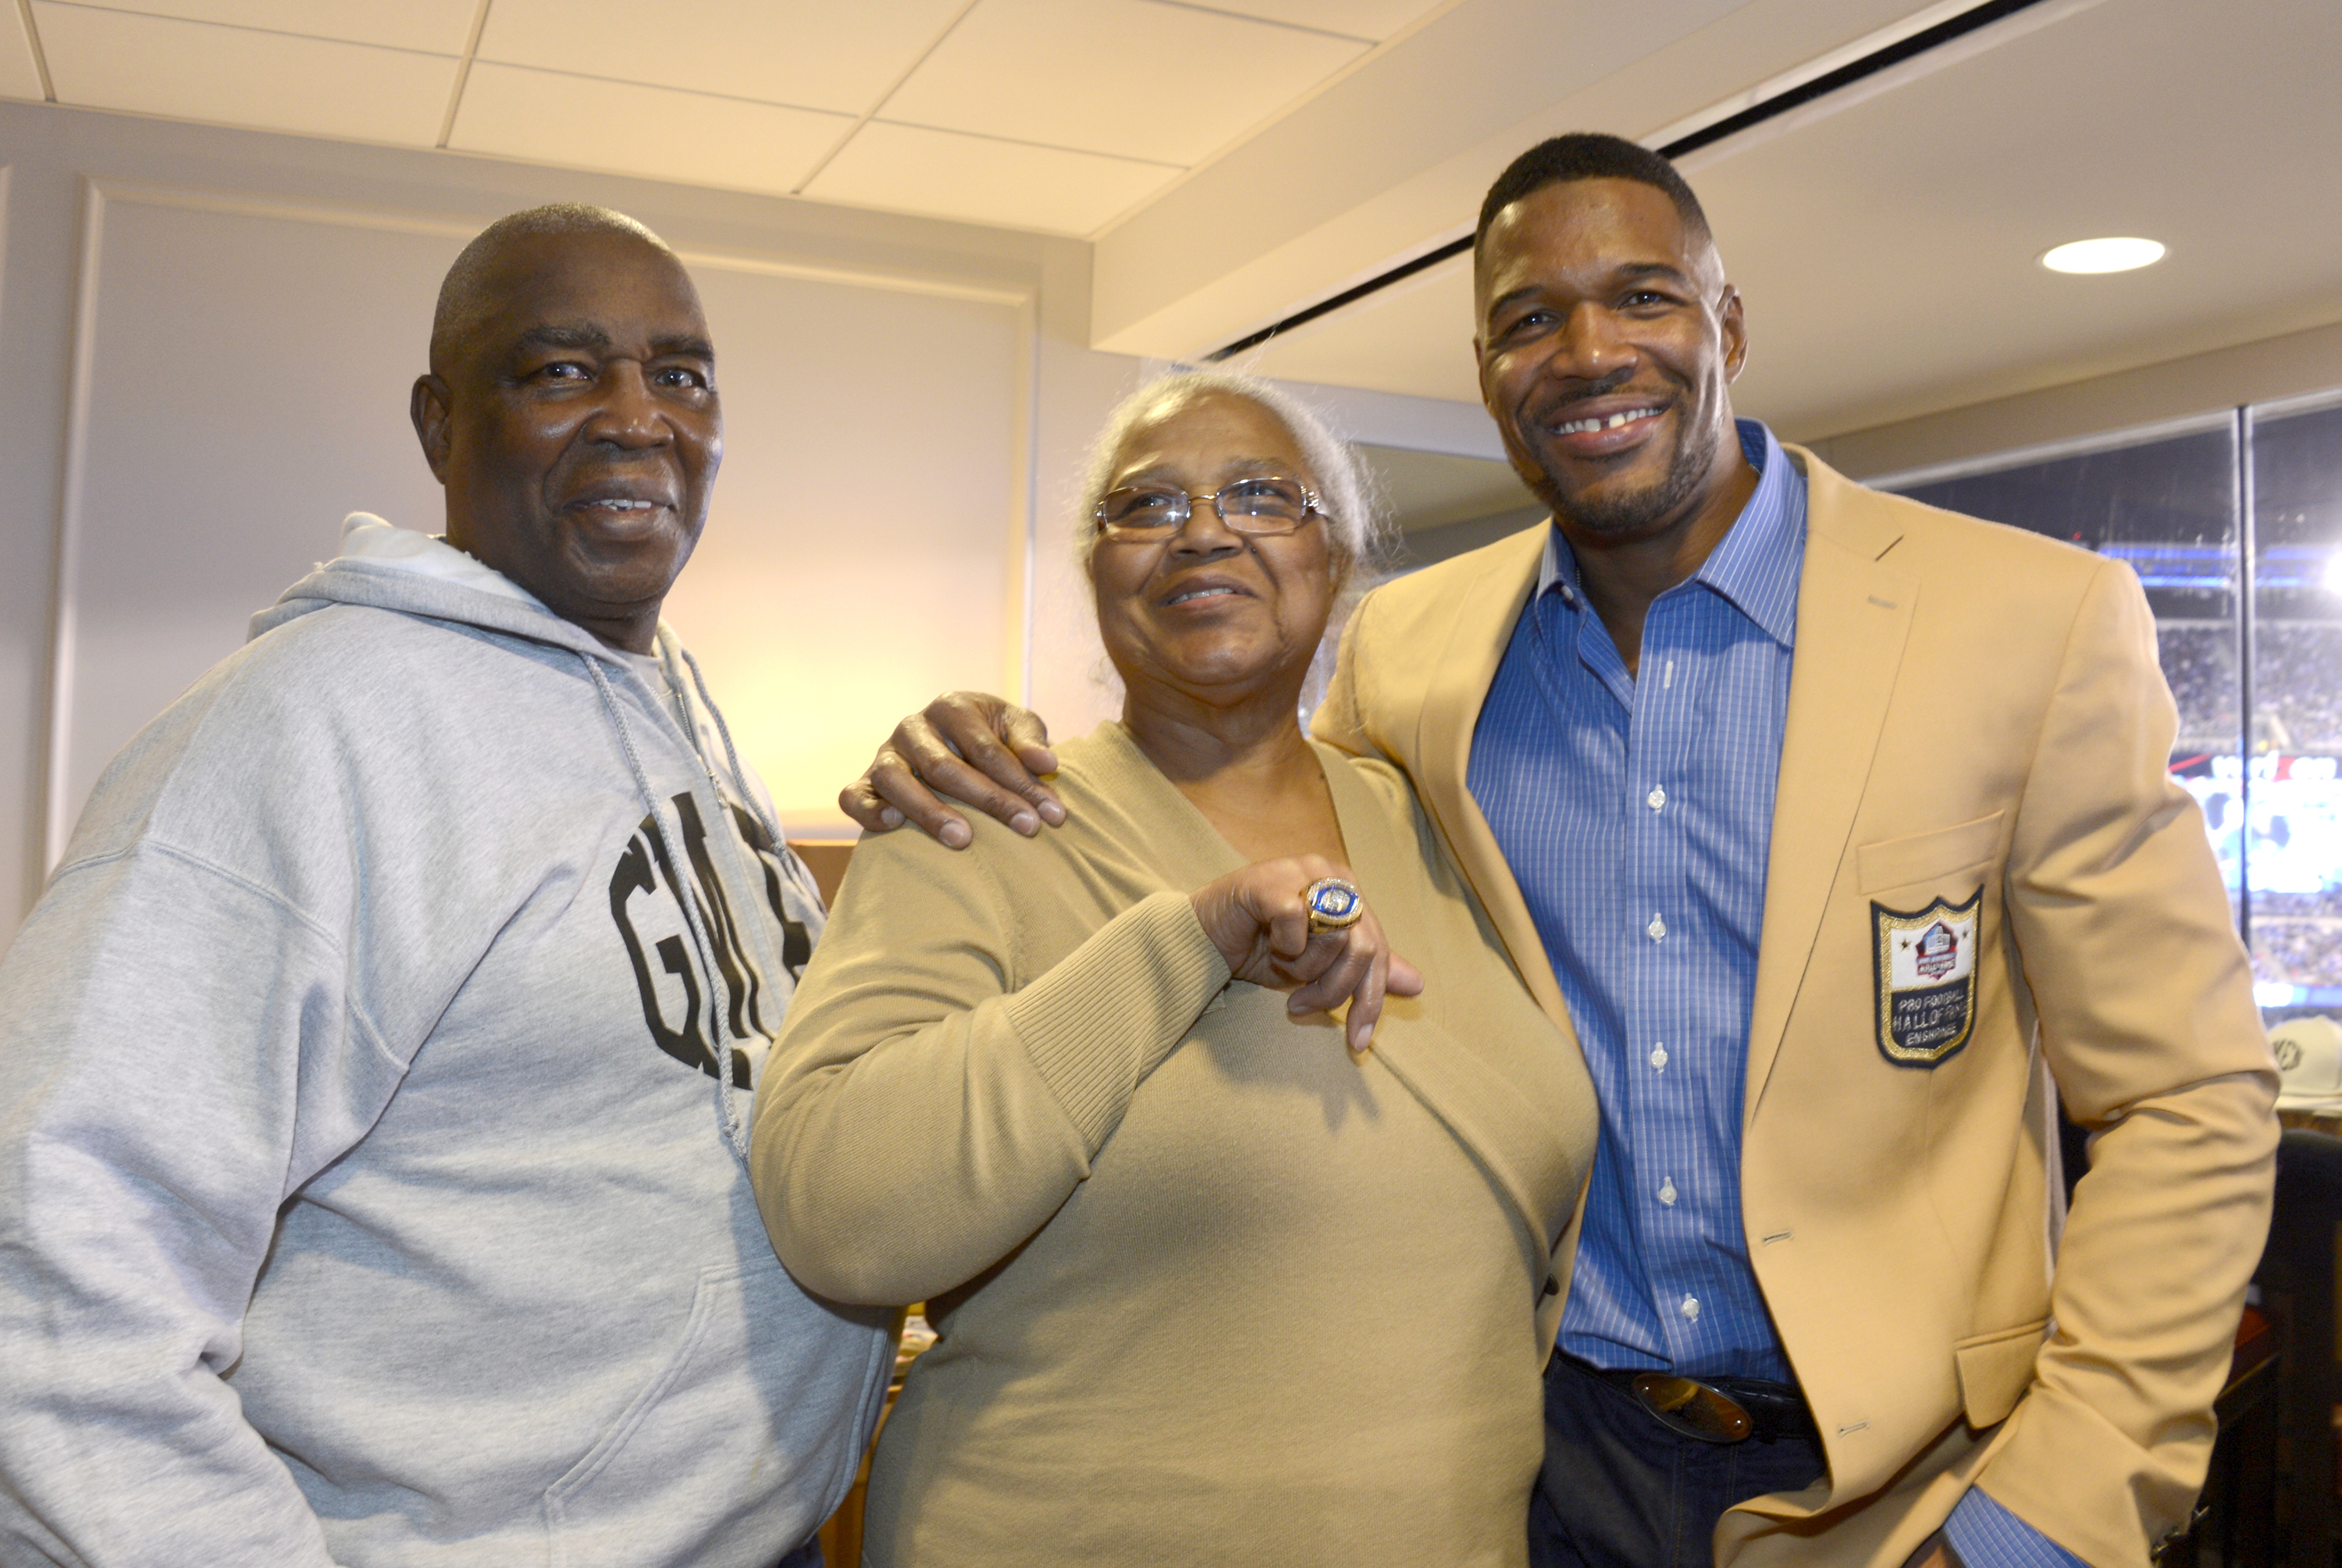 Michael Strahan with his dad, Gene, and mom, Louise